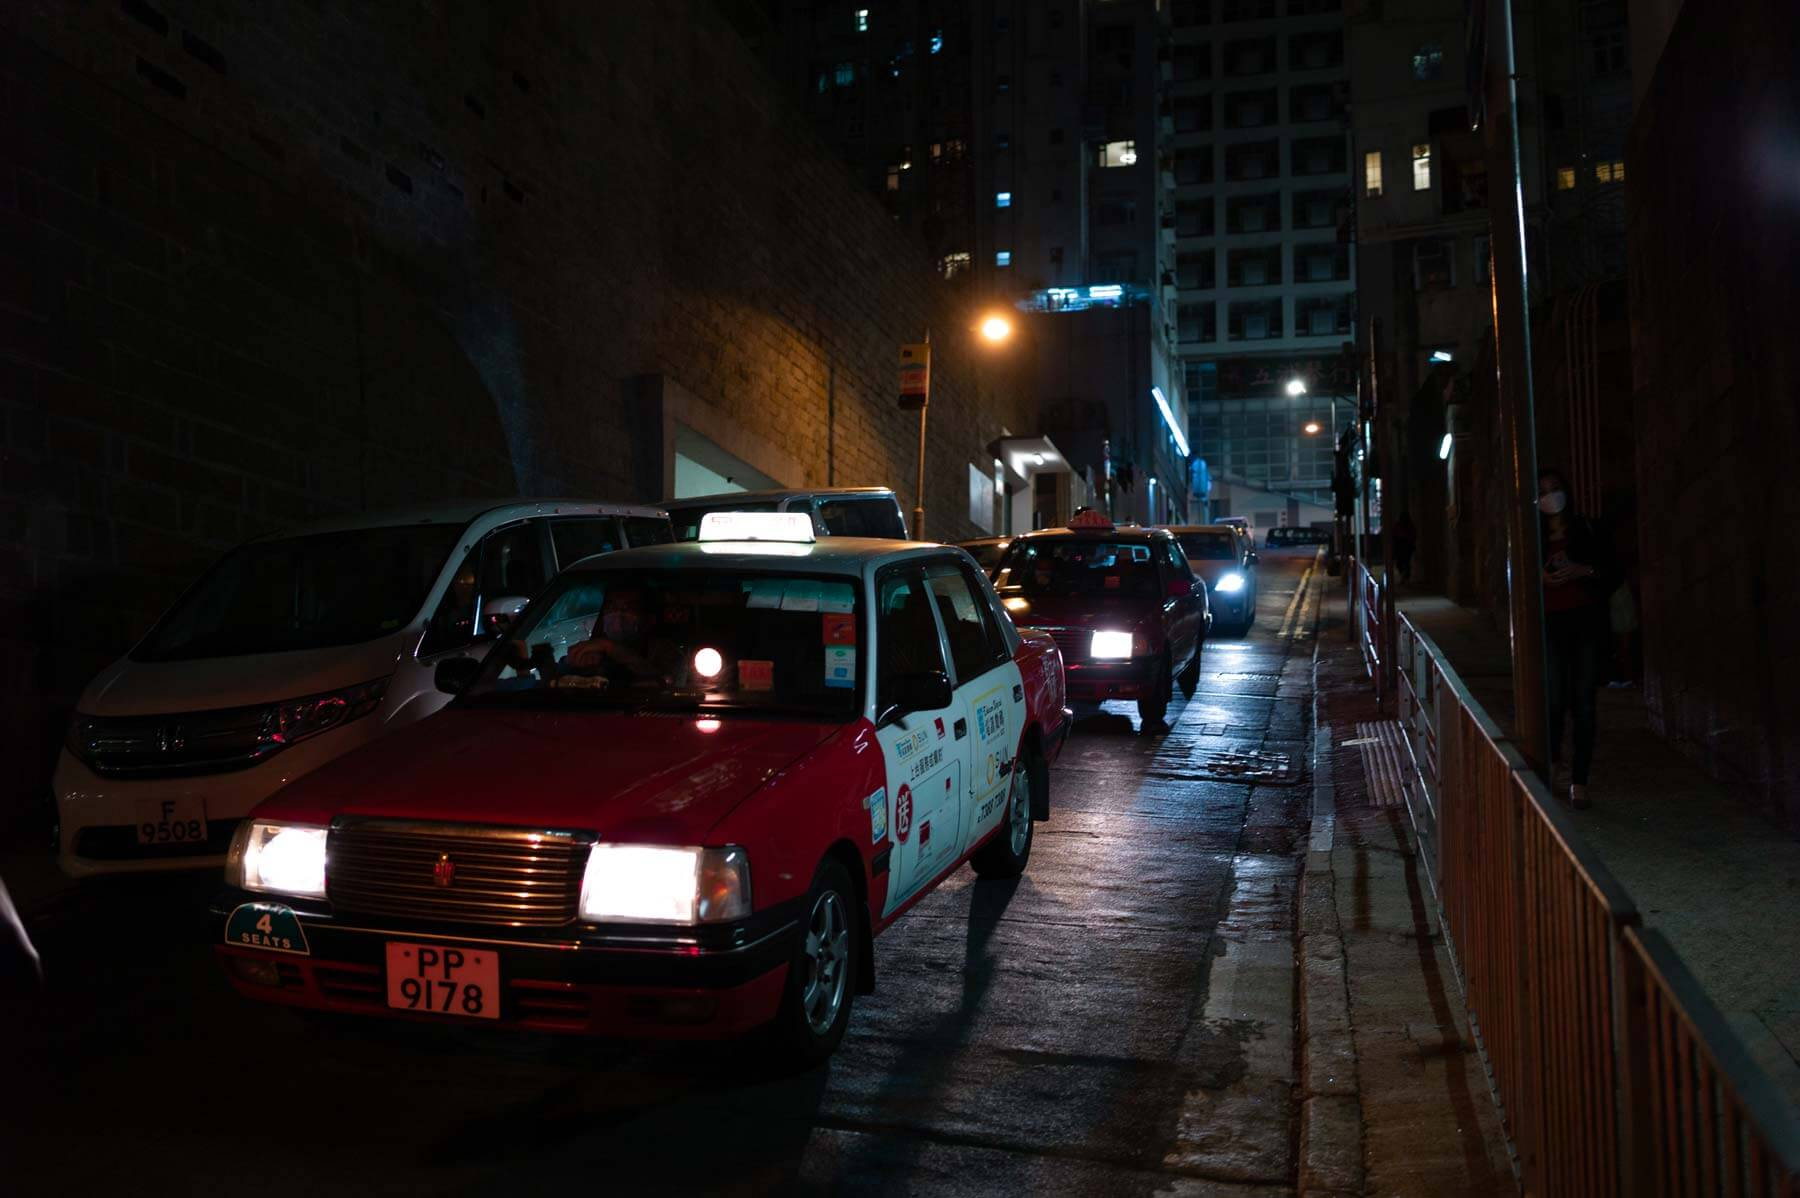 Voigtlander-35mm-f2-APO-lanthar-first-impression-review-lens-lenses-gear-test-new-vm-m-mount-sharpness-flare-free-taxi-central-hong-kong-night-2